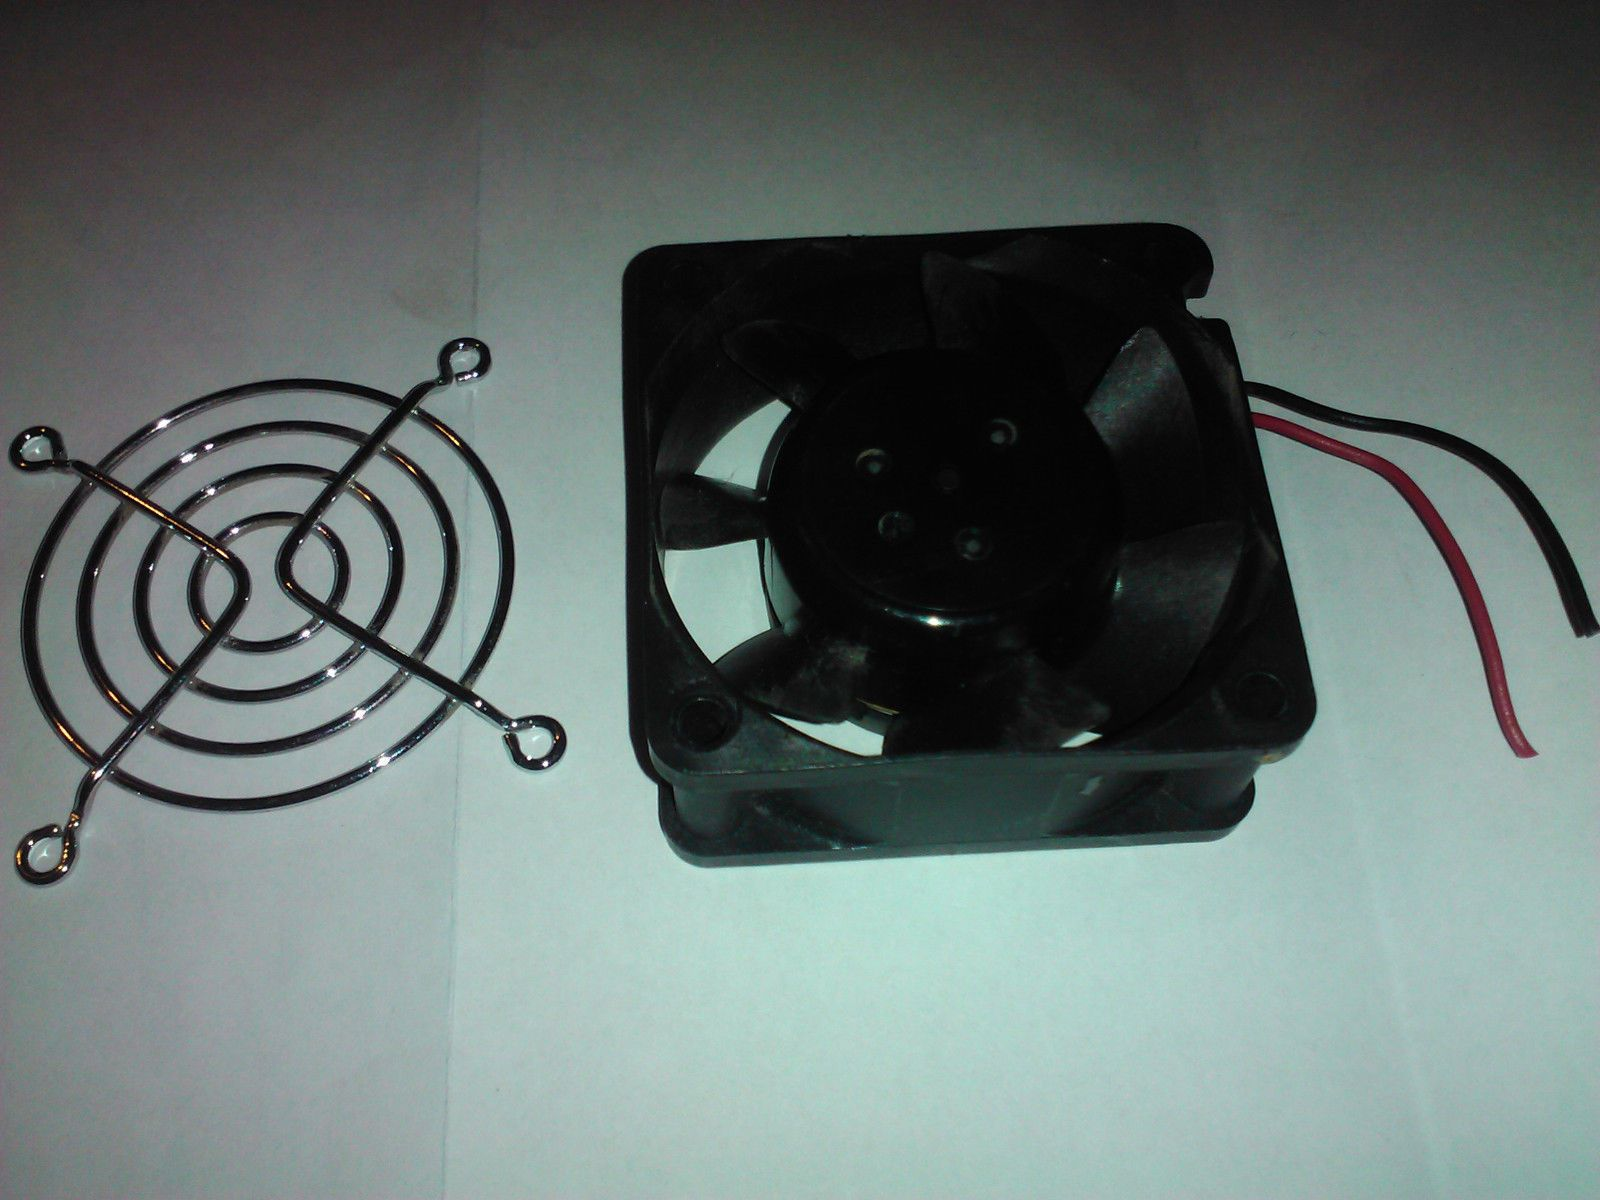 Nidec Beta PC TA225DC #E34390-16 Fan with Wire Guard For Sale - Item ...